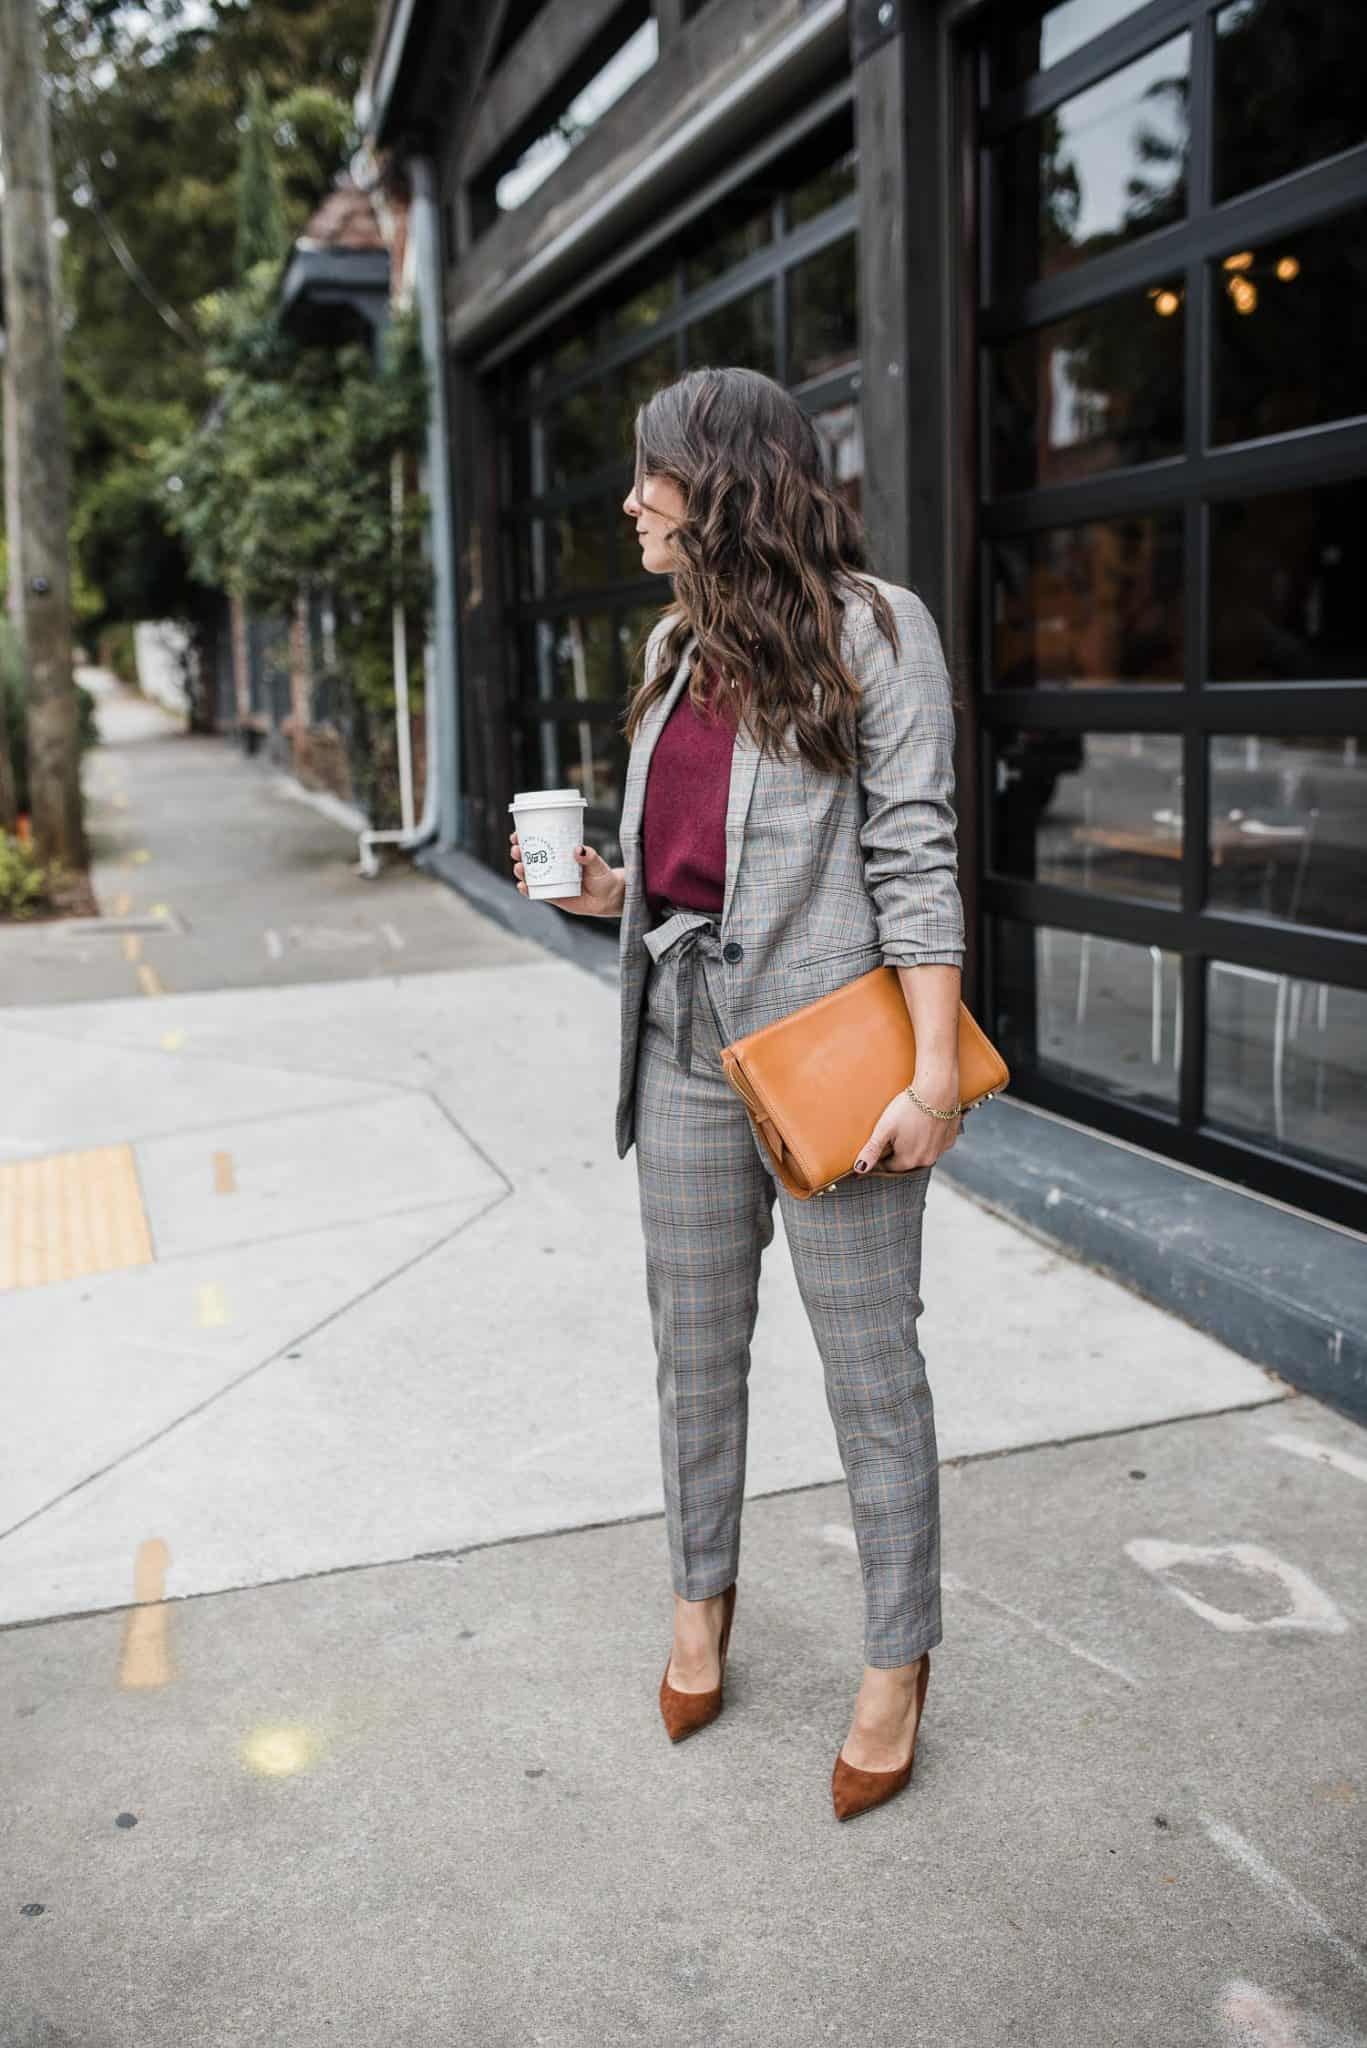 Three Totally Different Ways To Style One Classic Suit